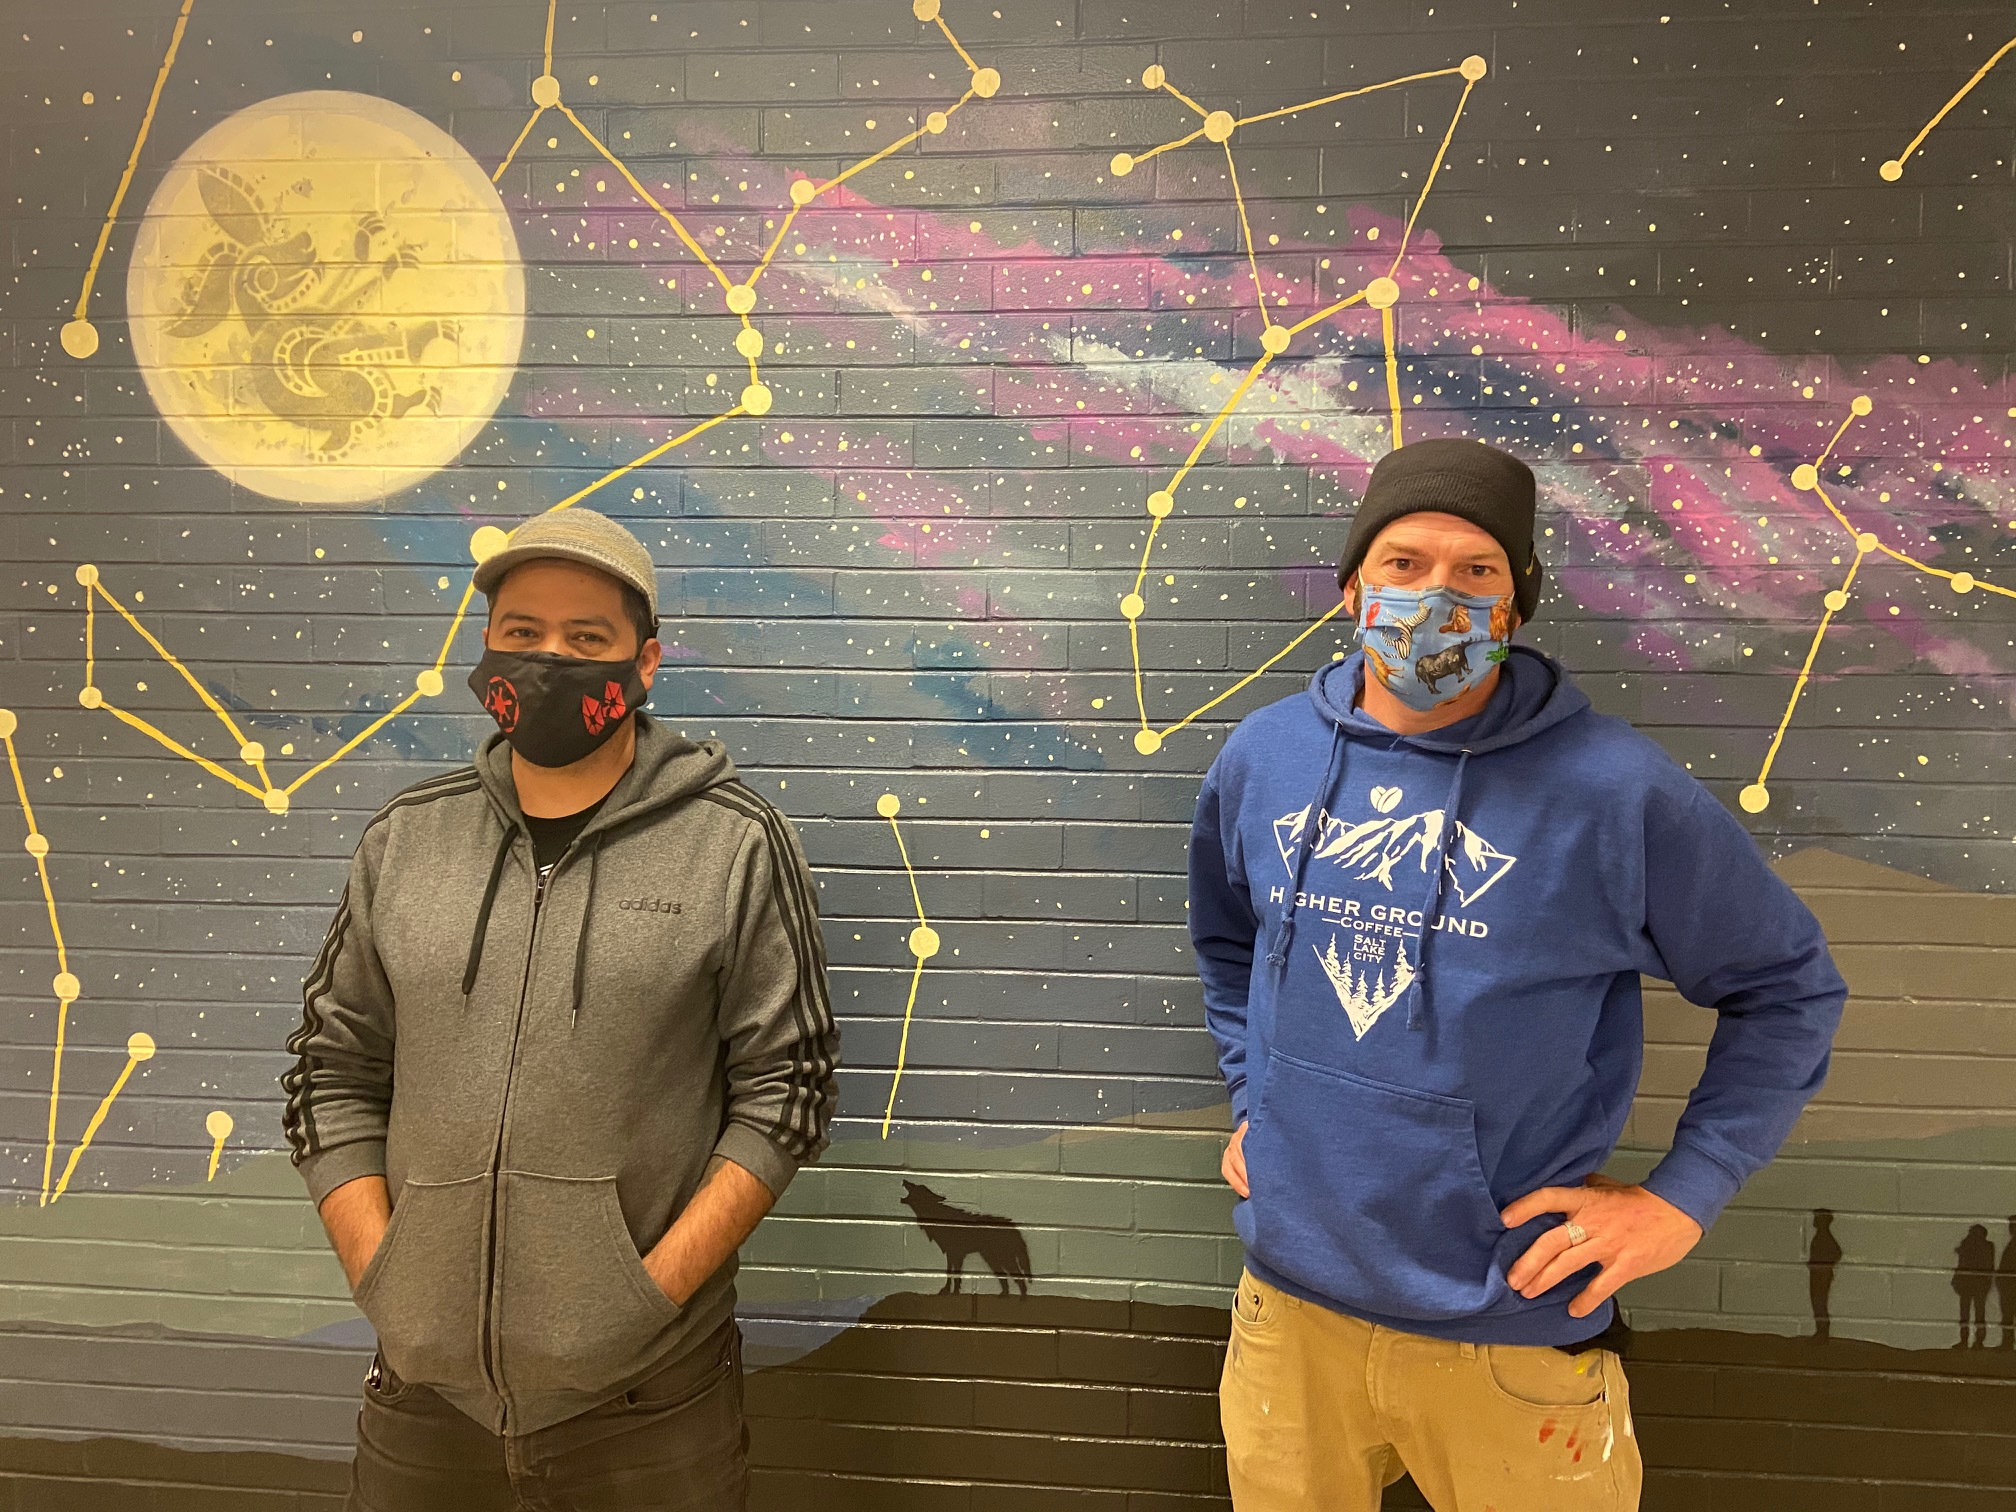 Jorge Arellano, left, wears a gray zip up hoodie, a gray hat and black jeans, and a mask. Josh Scheuerman, right, wears a blue sweatshirt, brown pants a black beanie and a mask. They stand in front of their mural.